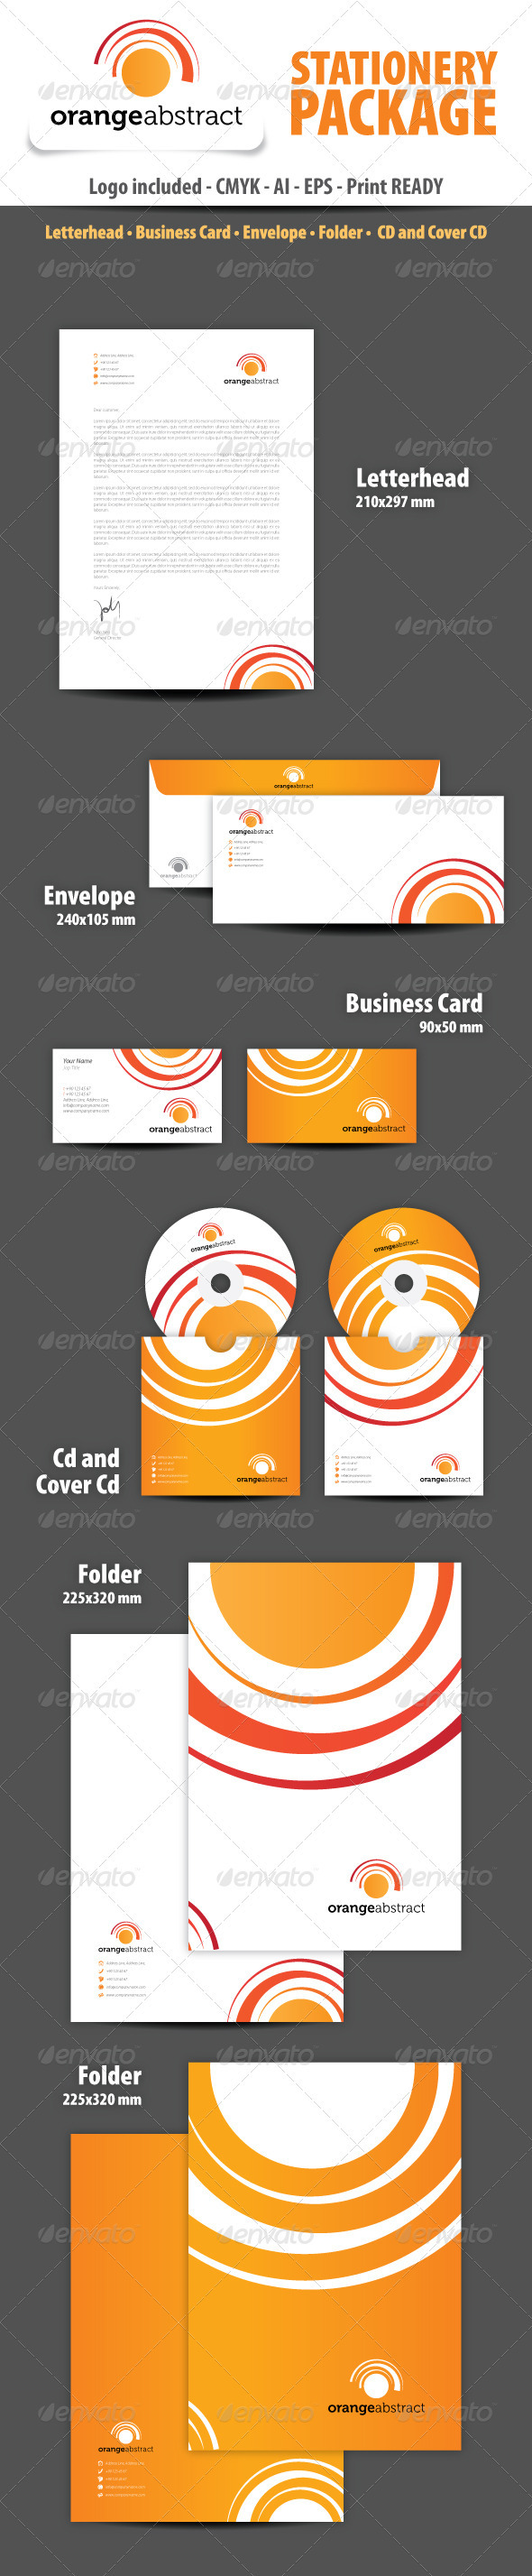 Orange abstract Stationery Package - Stationery Print Templates